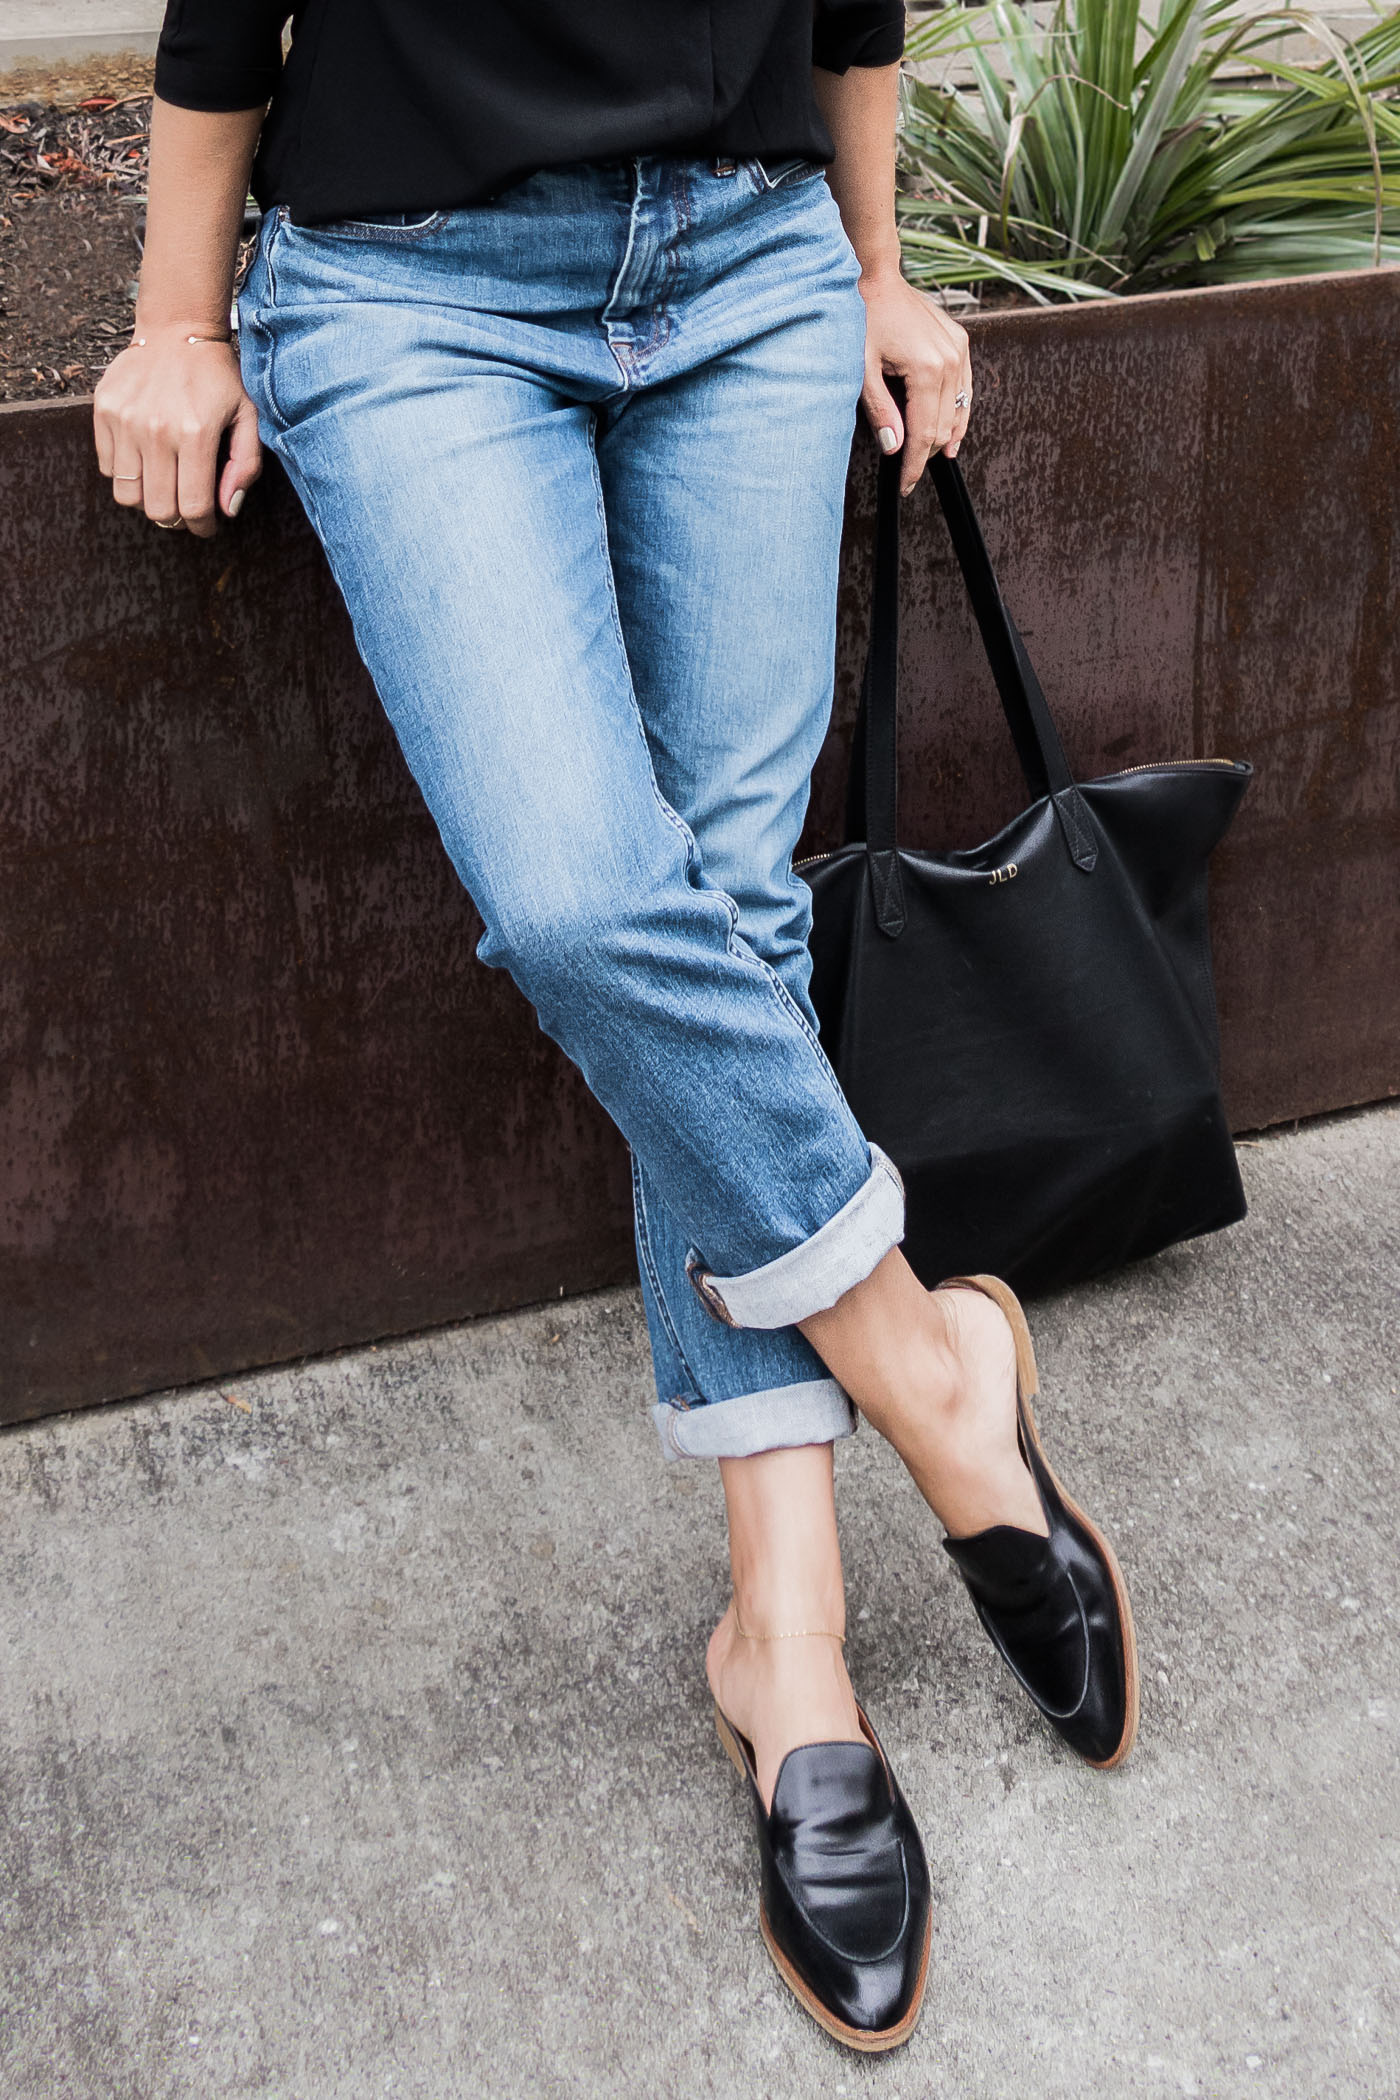 Everlane's feel good denim. Eco-friendly, affordable, great fit.